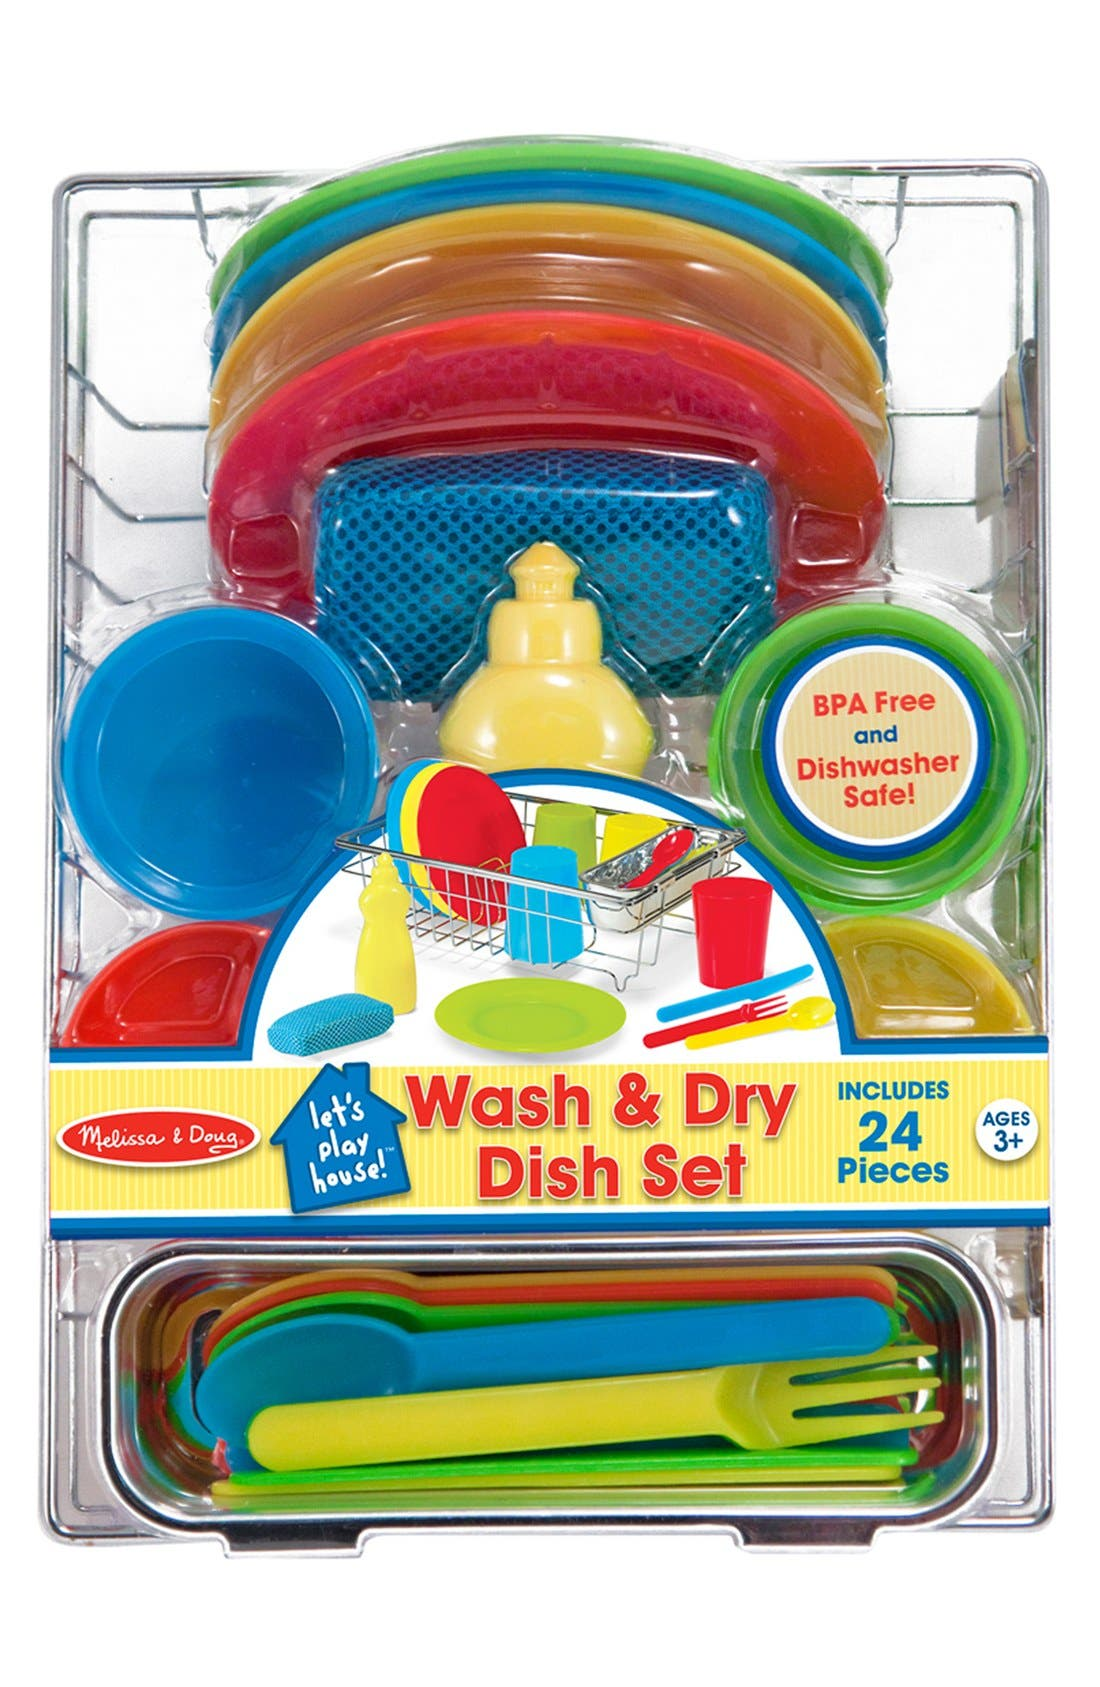 Main Image - Melissa & Doug Wash & Dry Dish Set Toy